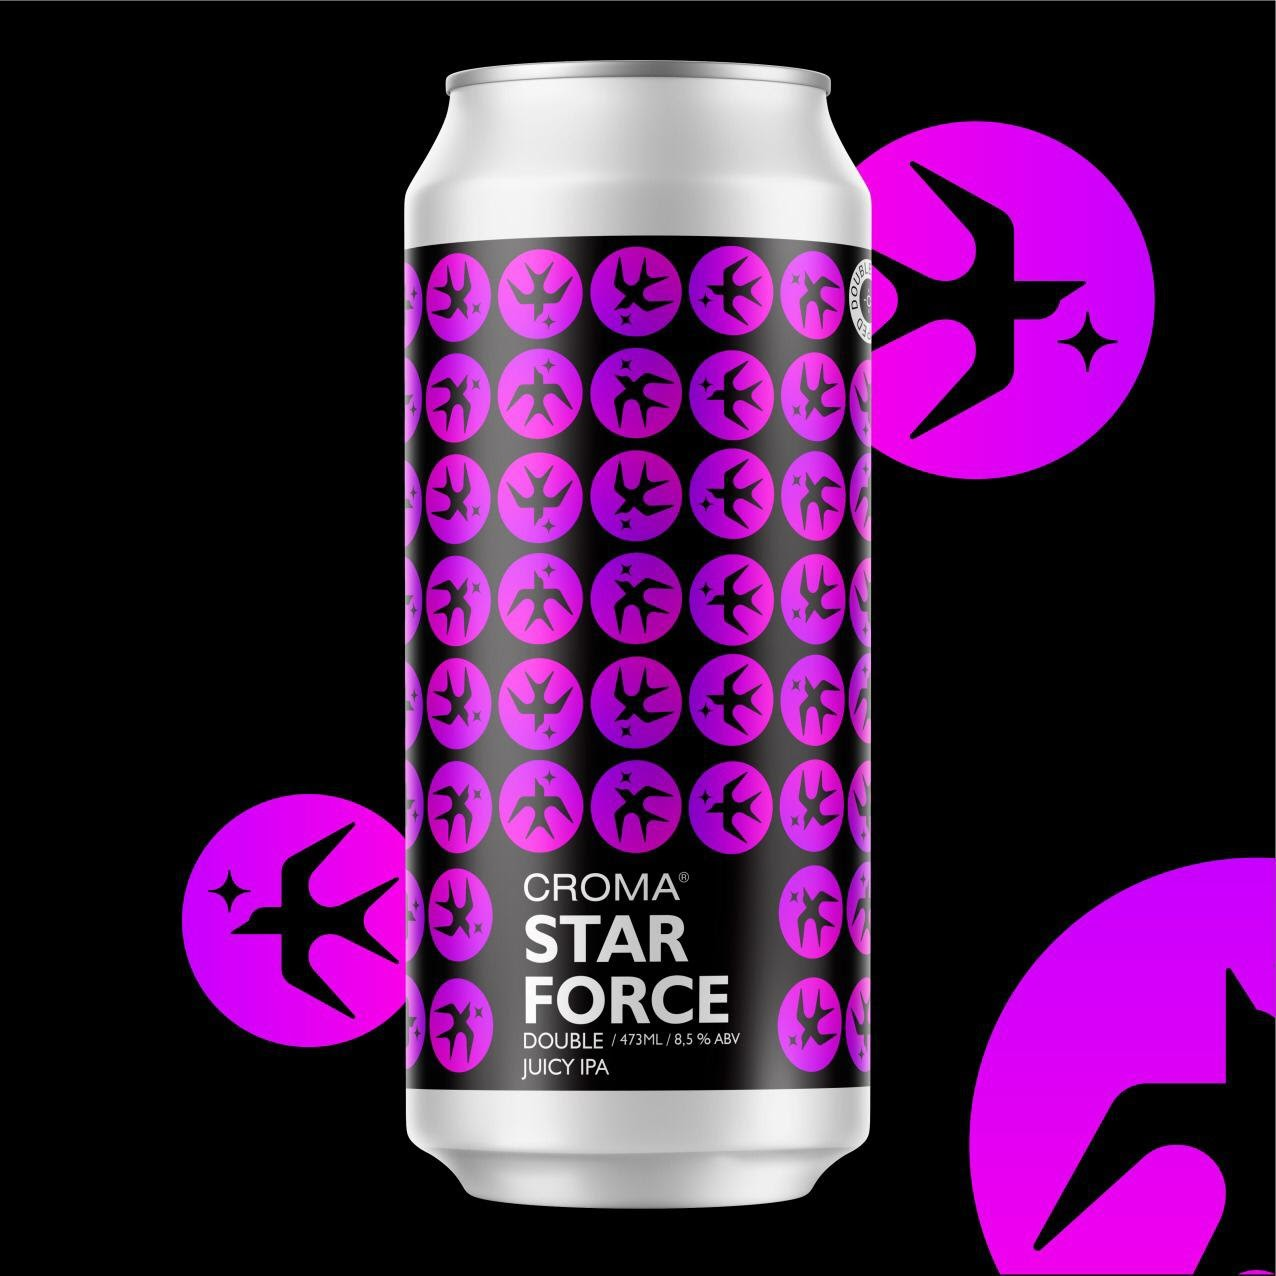 Croma Star Force Lata 473ml Double Juicy IPA